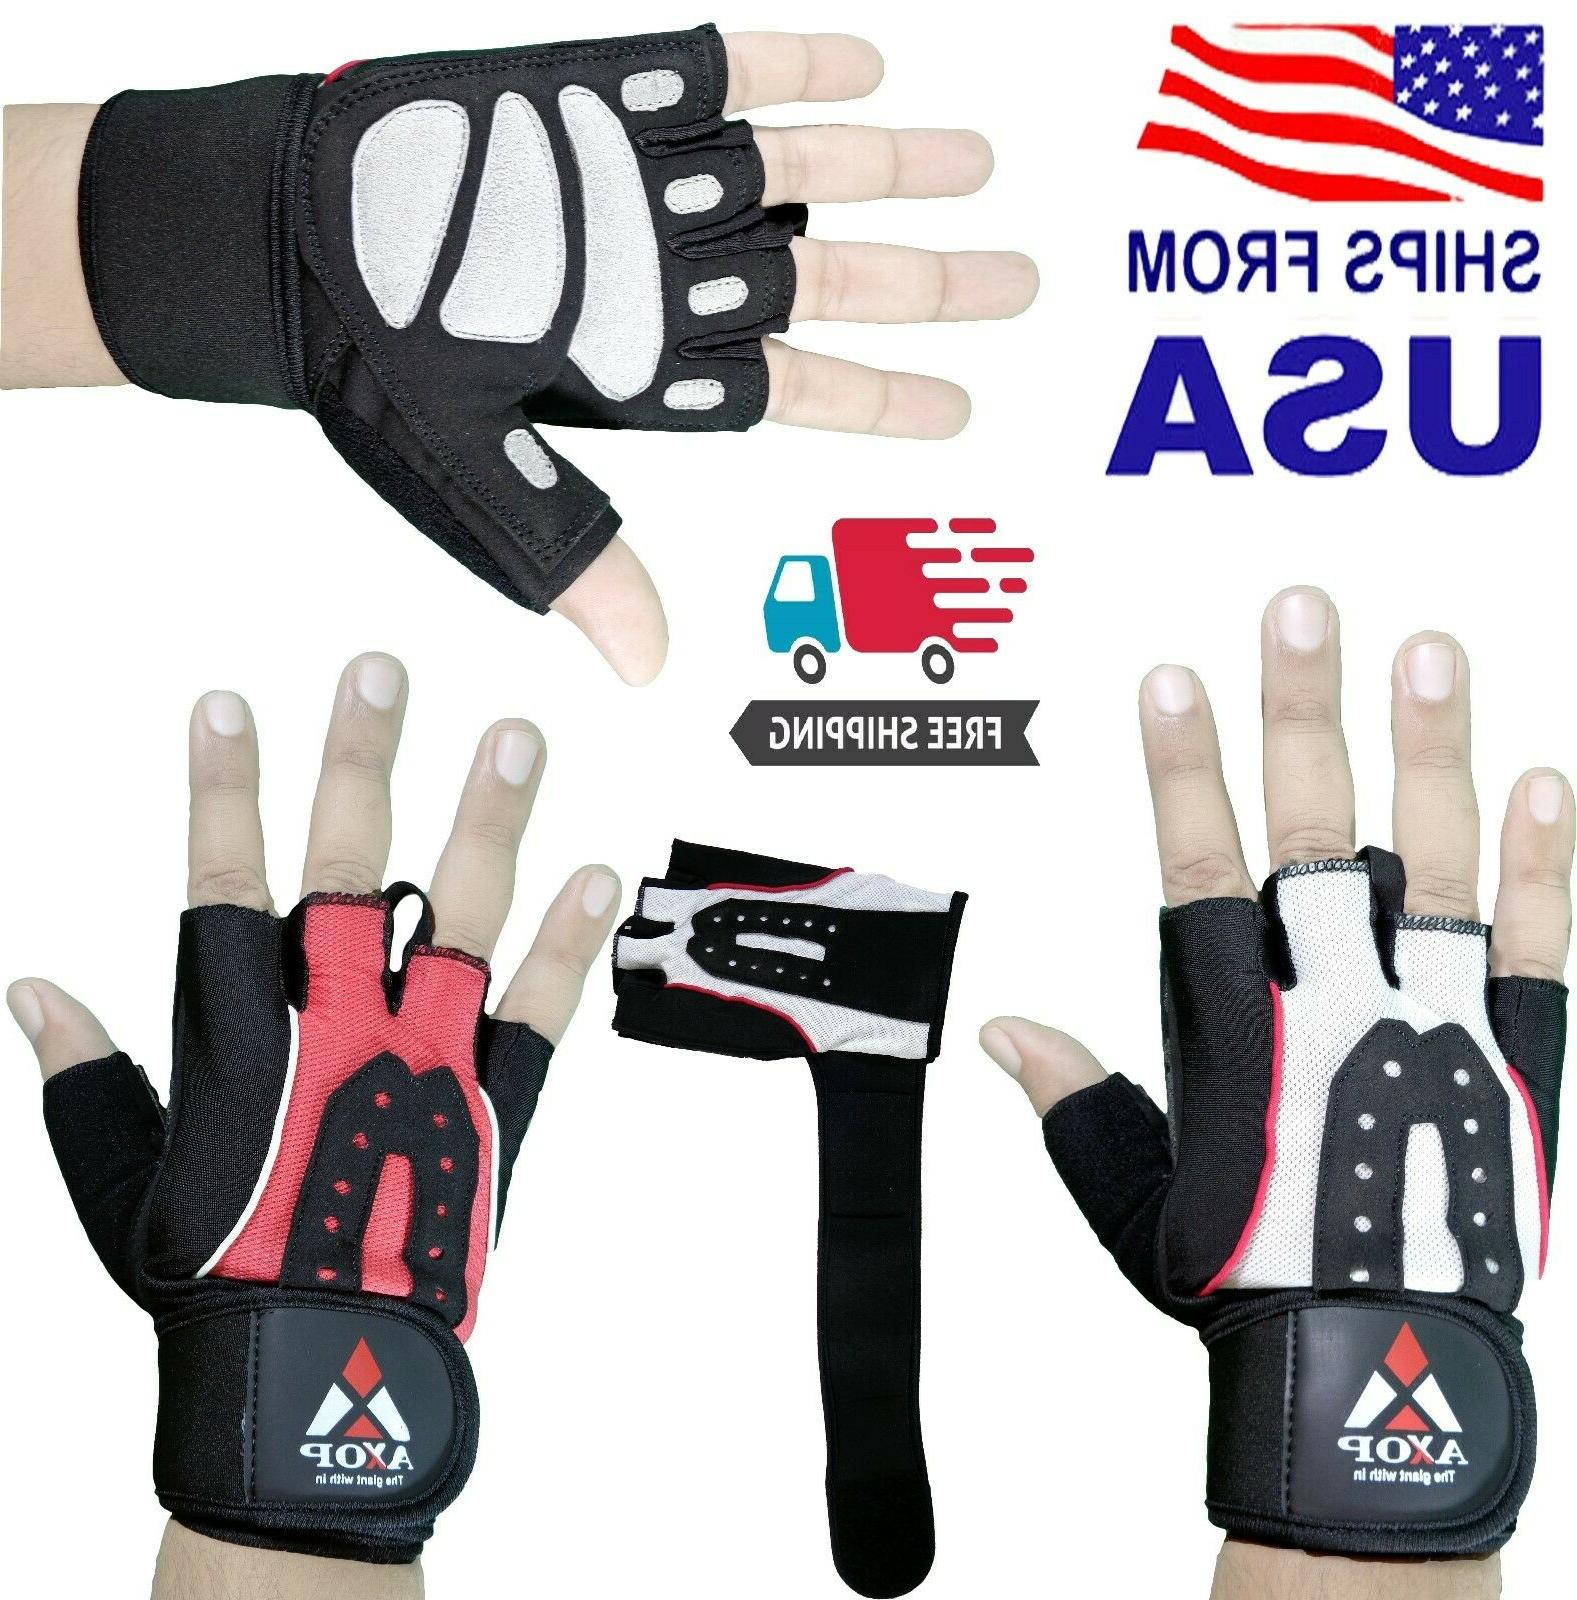 weight lifting gym gloves workout wrist wrap